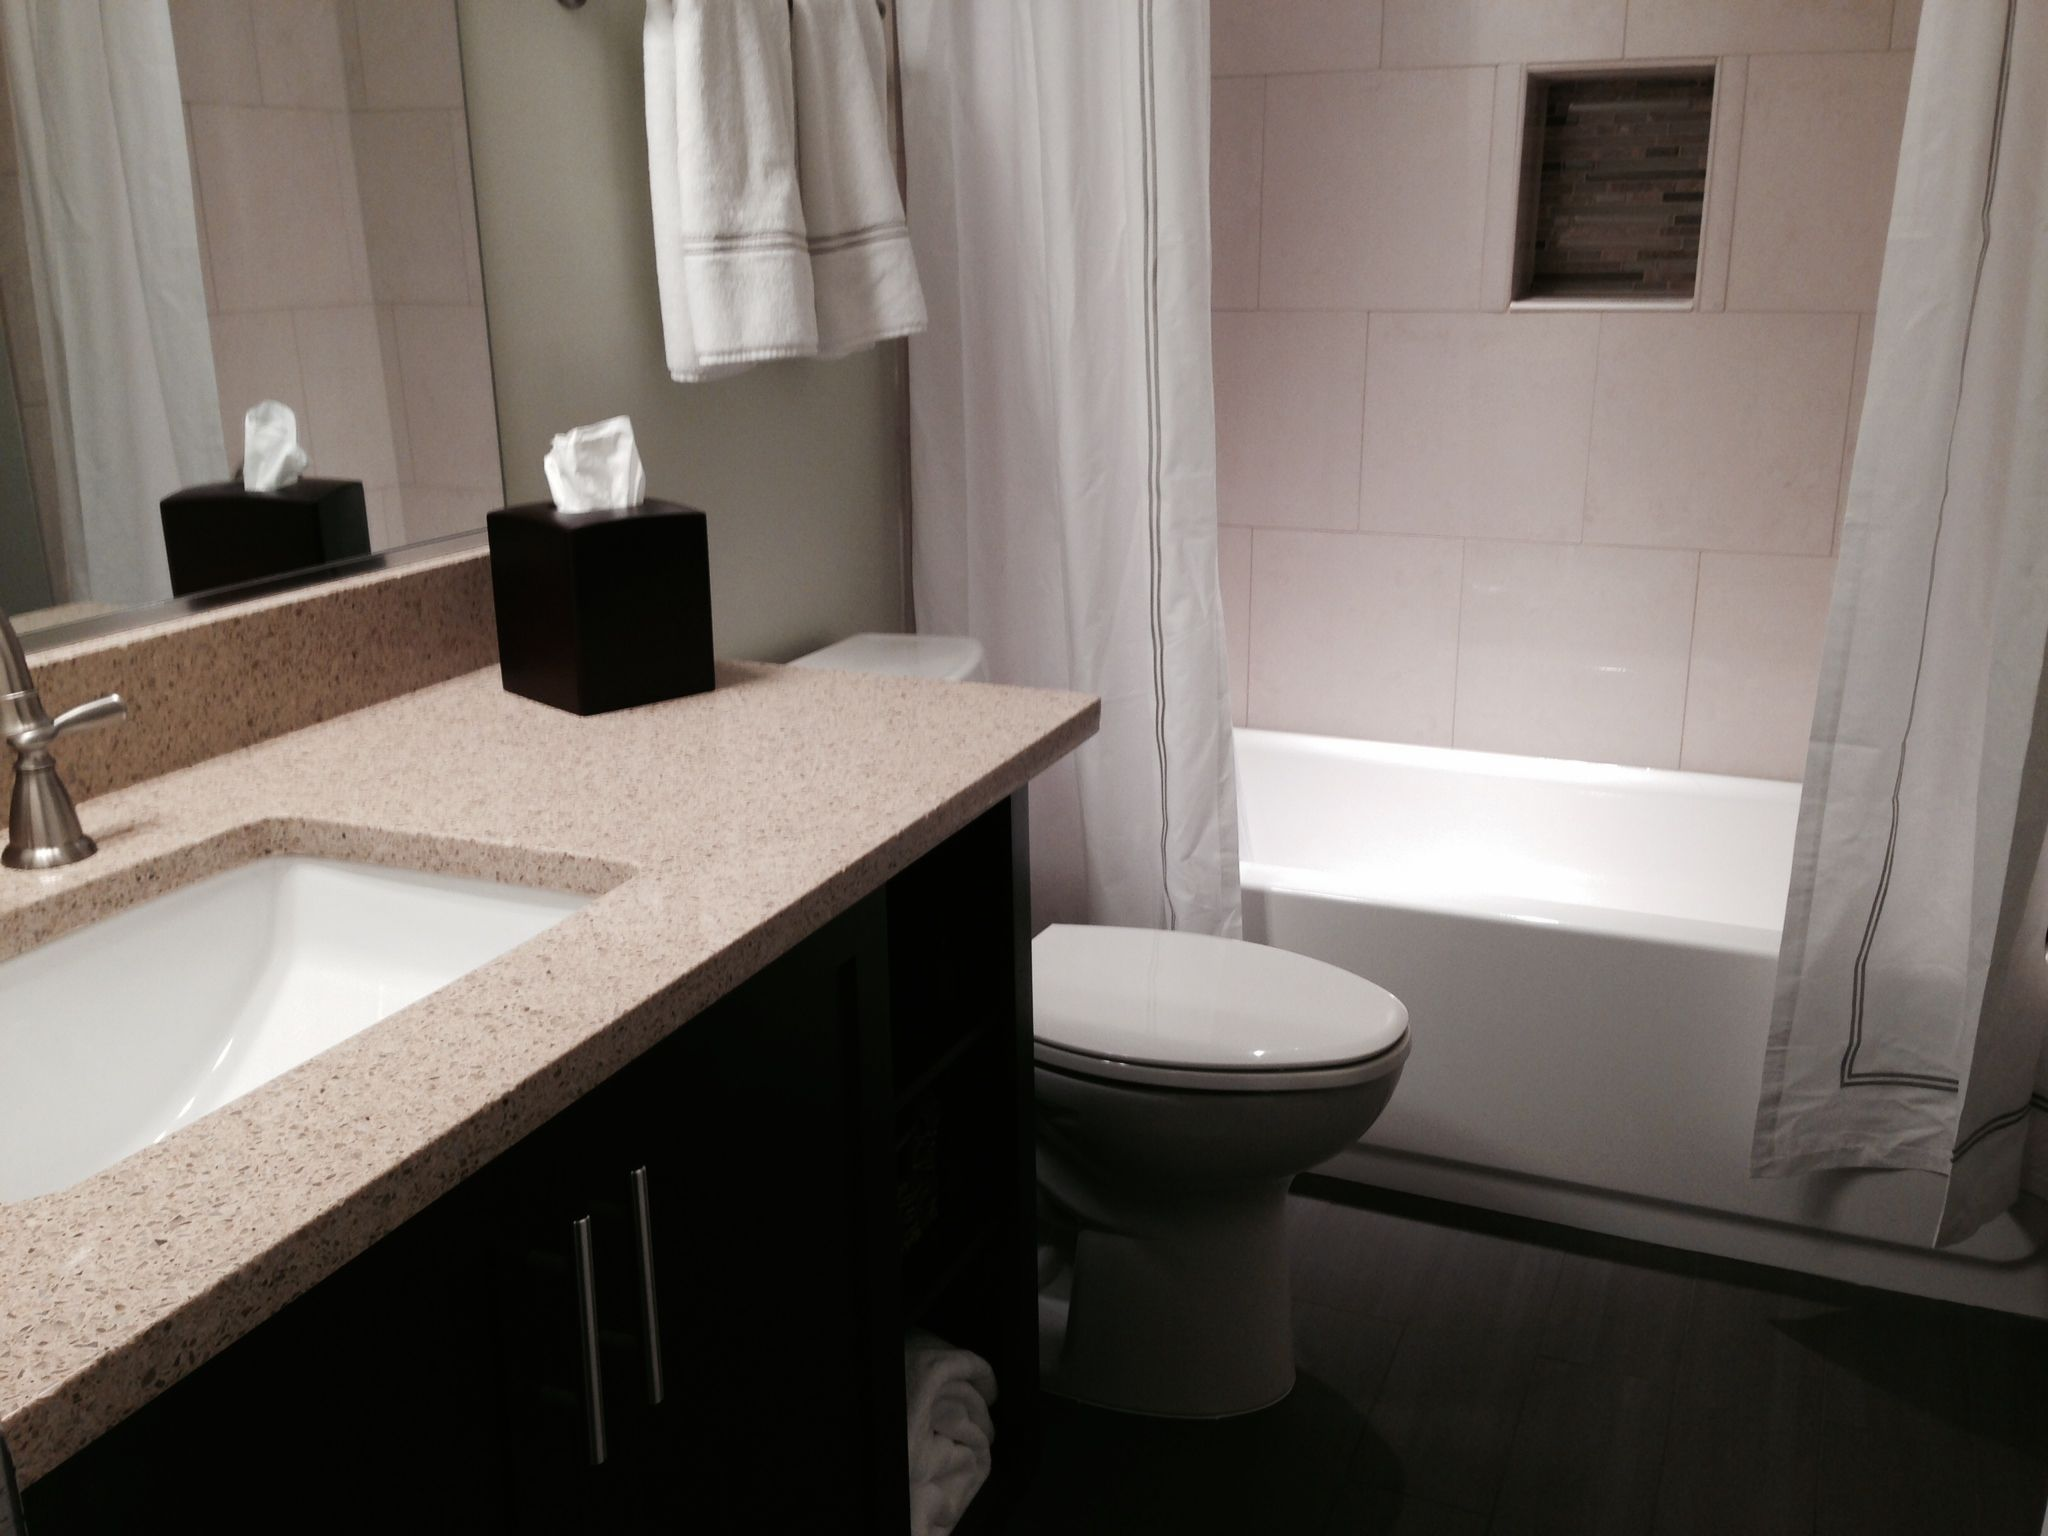 basement bathroom remodel fairfax - Bathroom Remodeling Fairfax Va